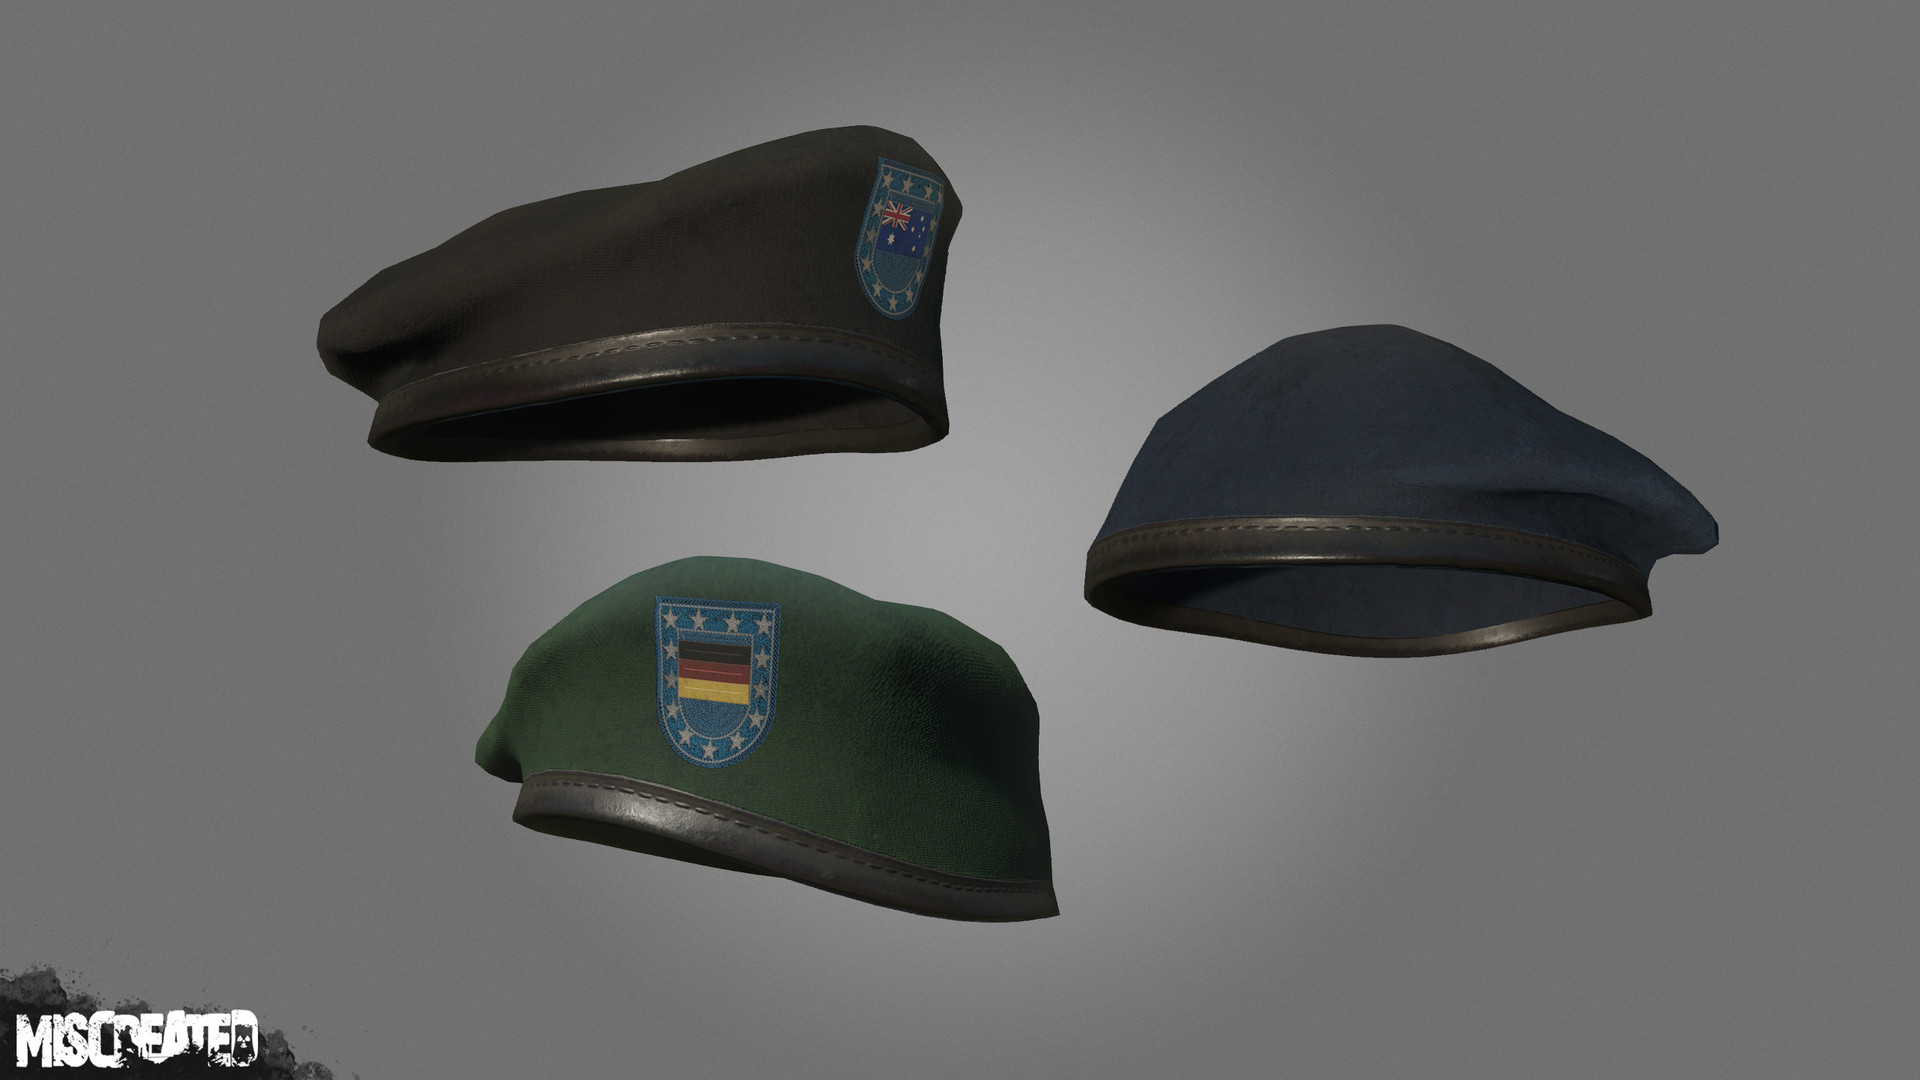 Military Beret, available in multiple colors and emblems